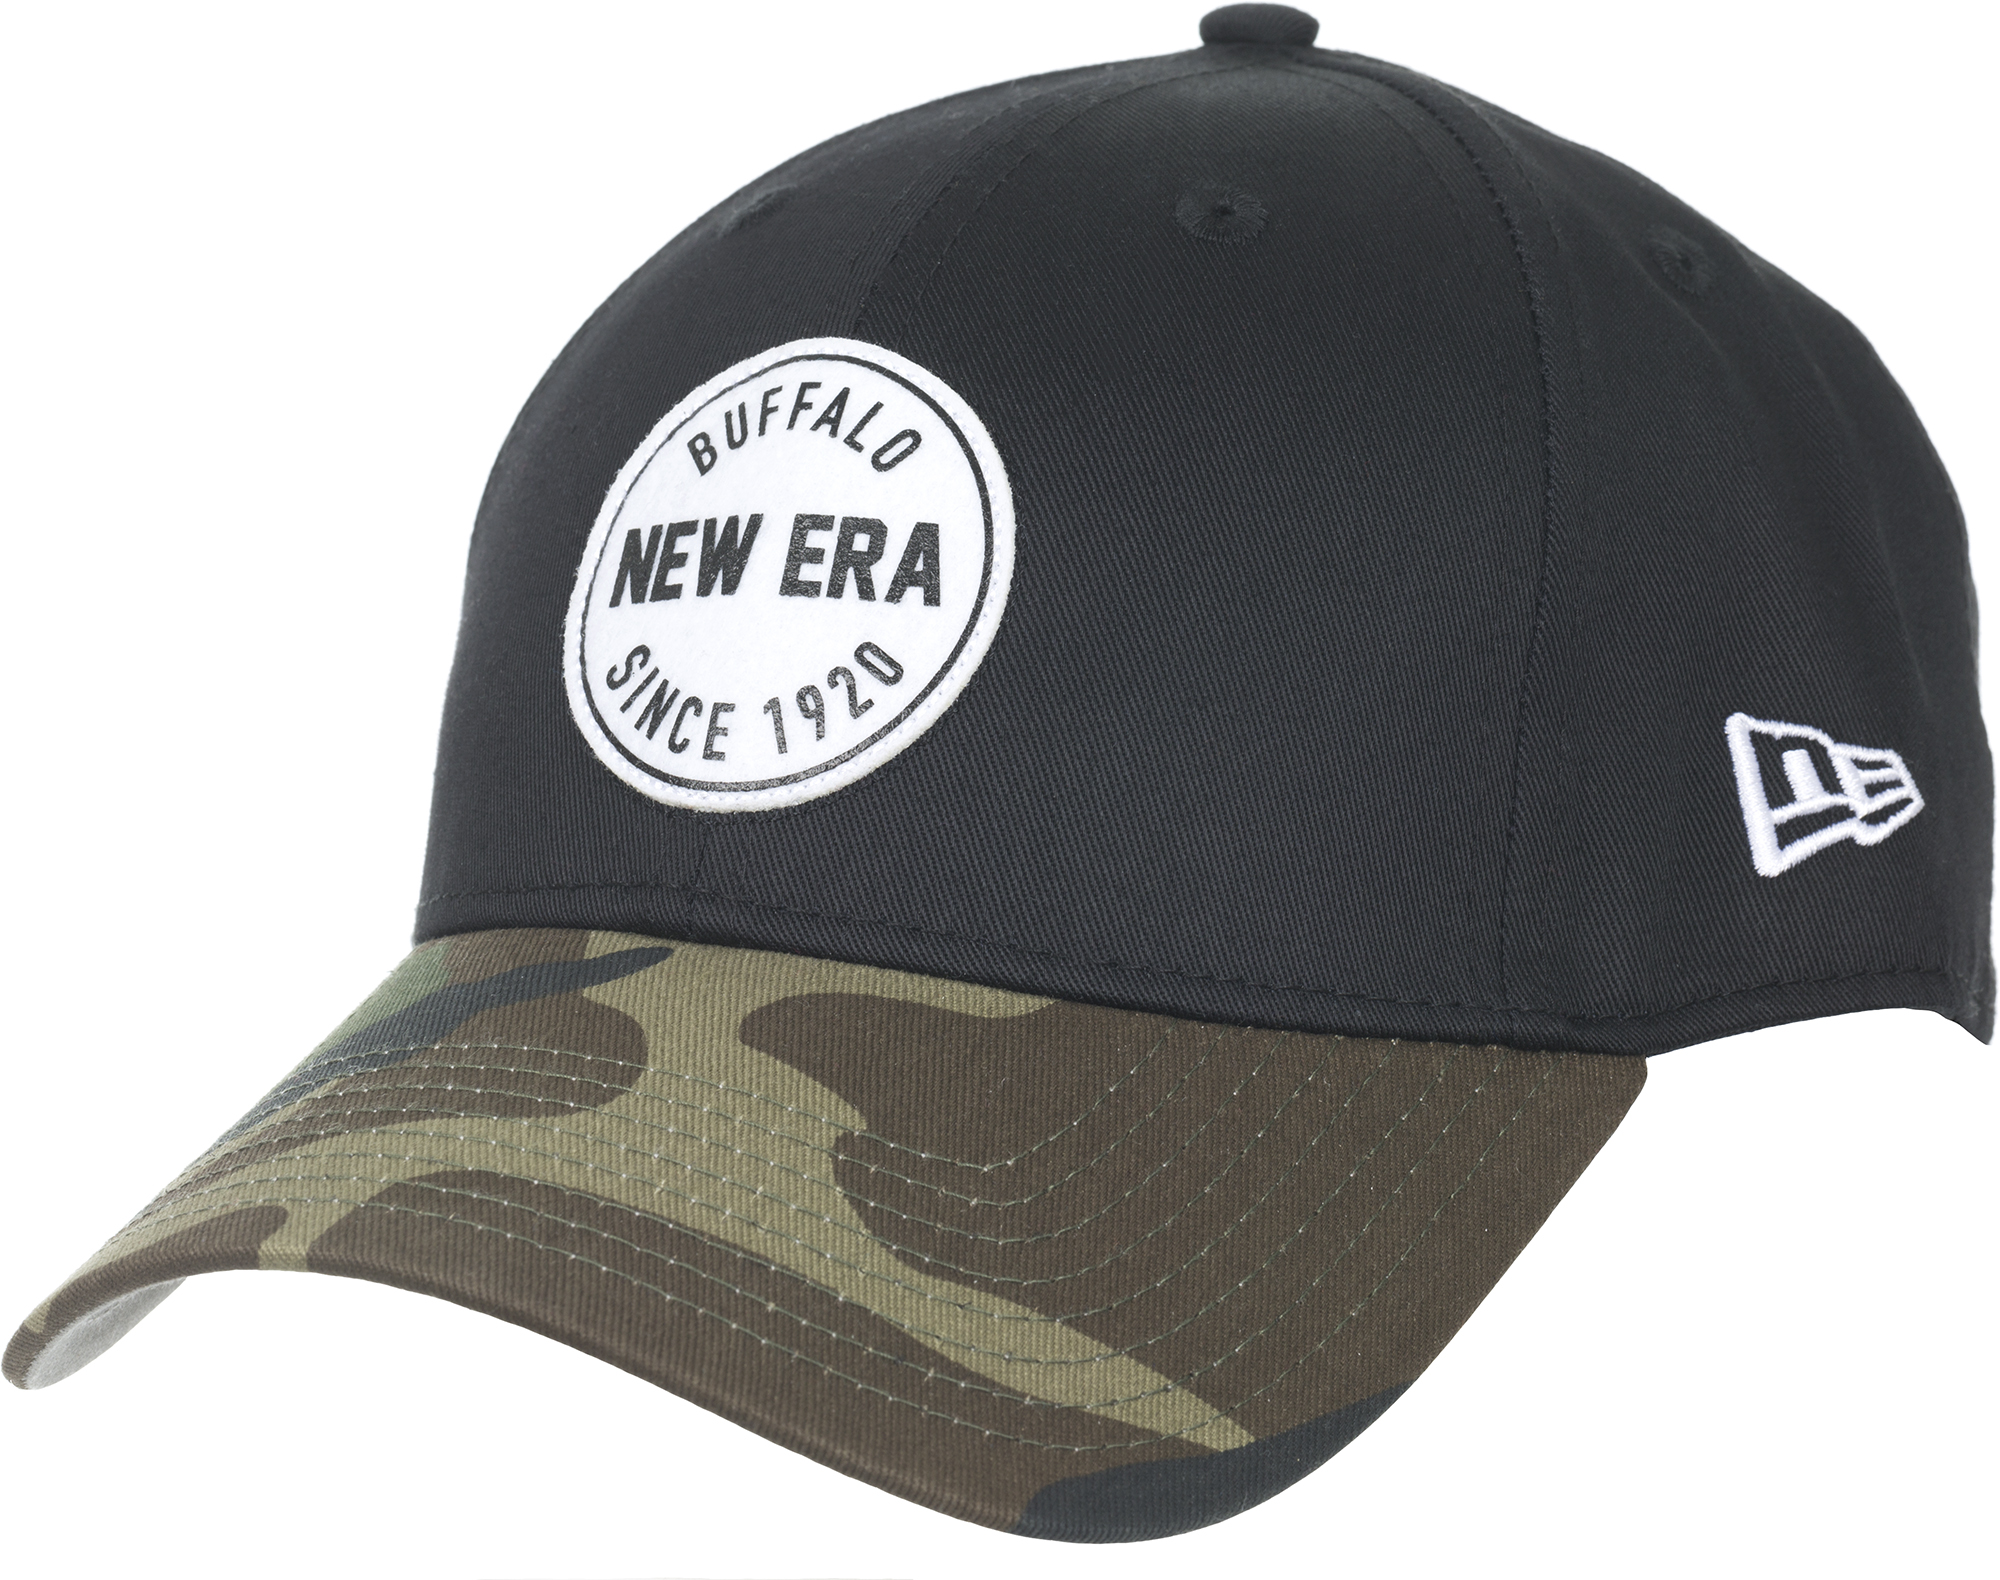 New Era Бейсболка New Era 115 Sm SP16 Entry 9Forty Newera new era бейсболка мужская new era